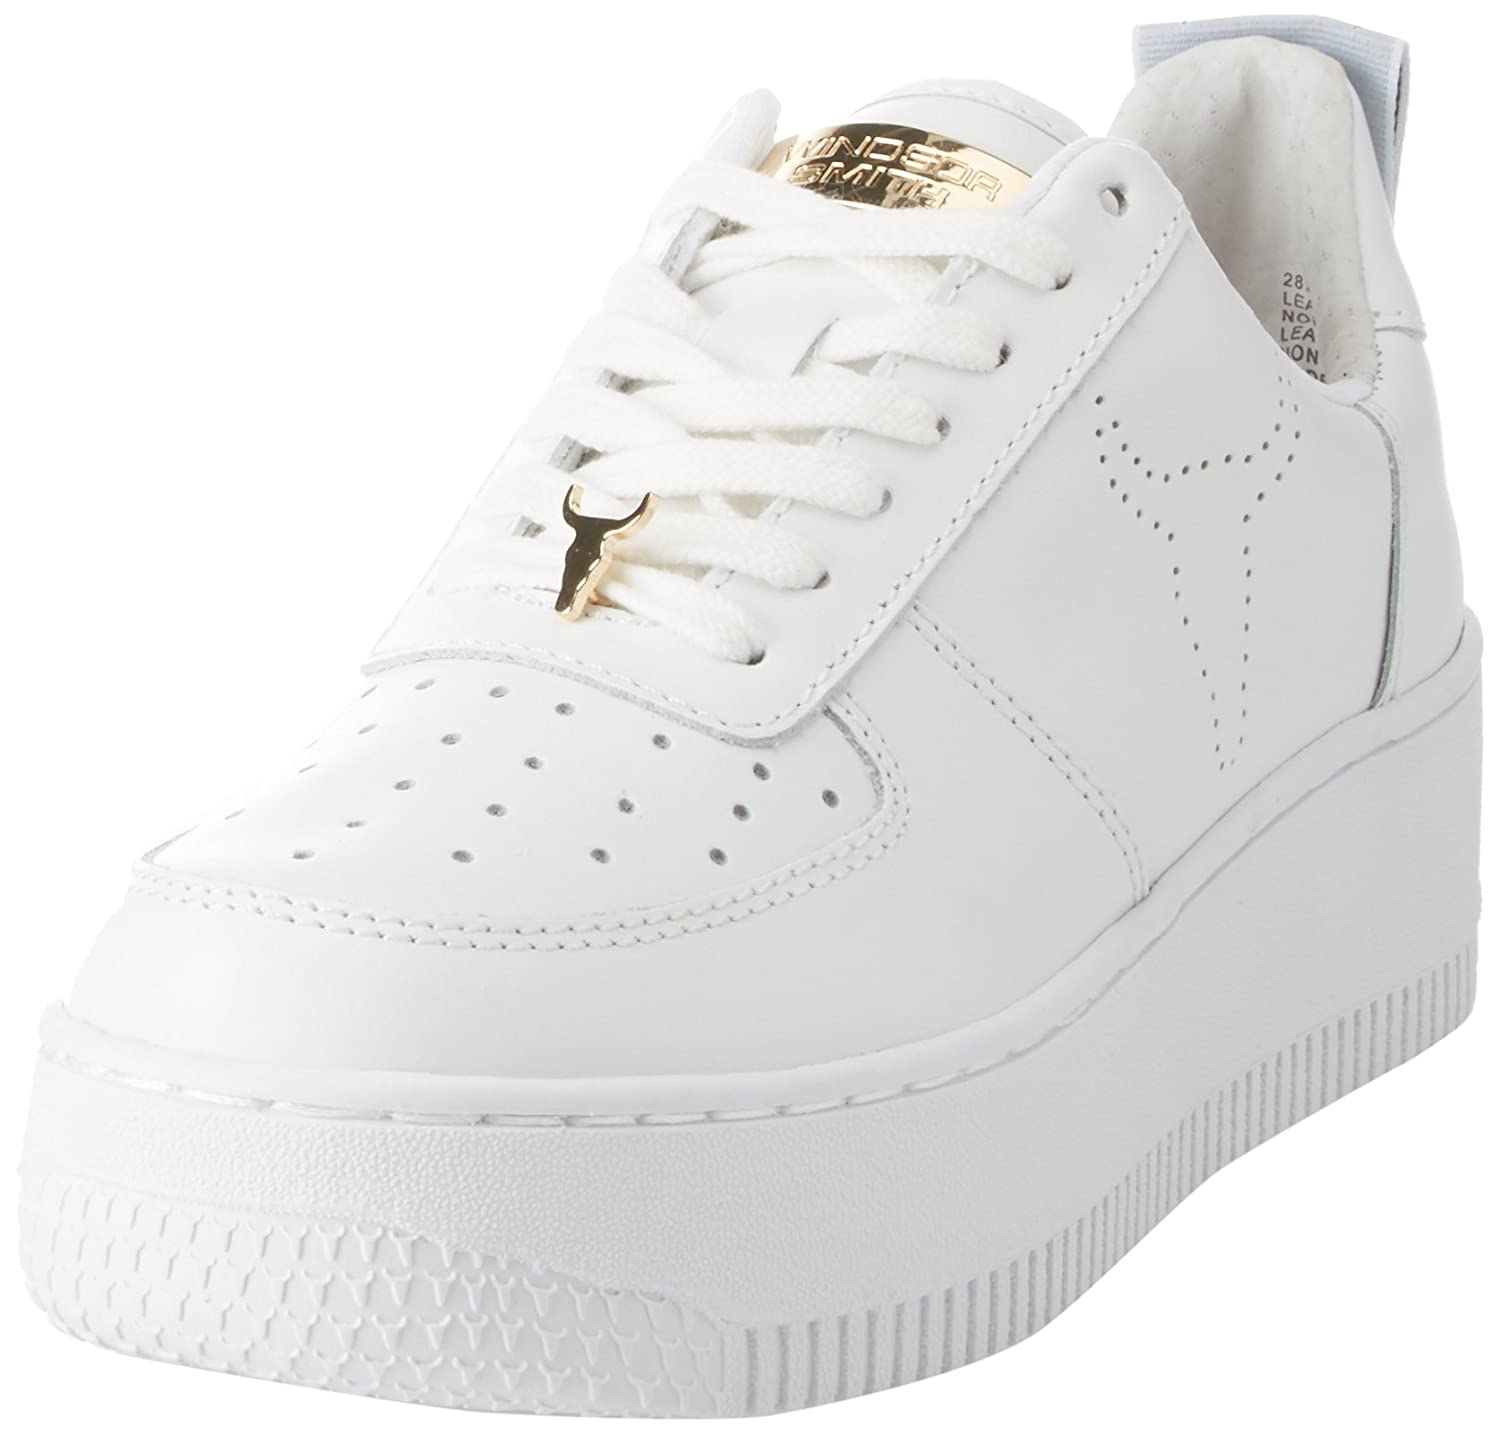 Windsor Smith Racerr, Zapatillas para Mujer 36 EU|Bianco (Leather White)